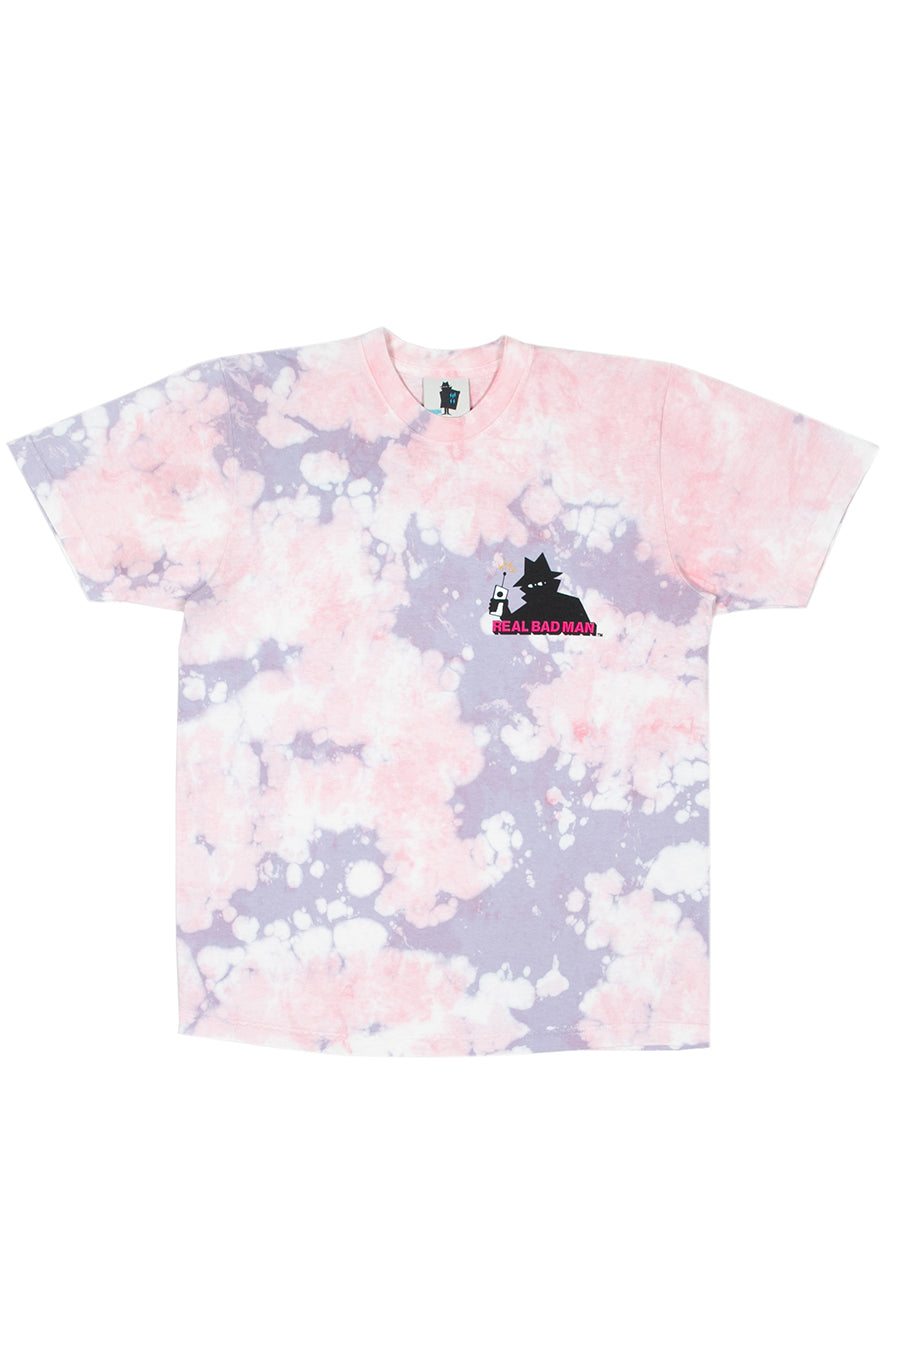 Real Bad Man - Pink Tie Dye Logo T-Shirt